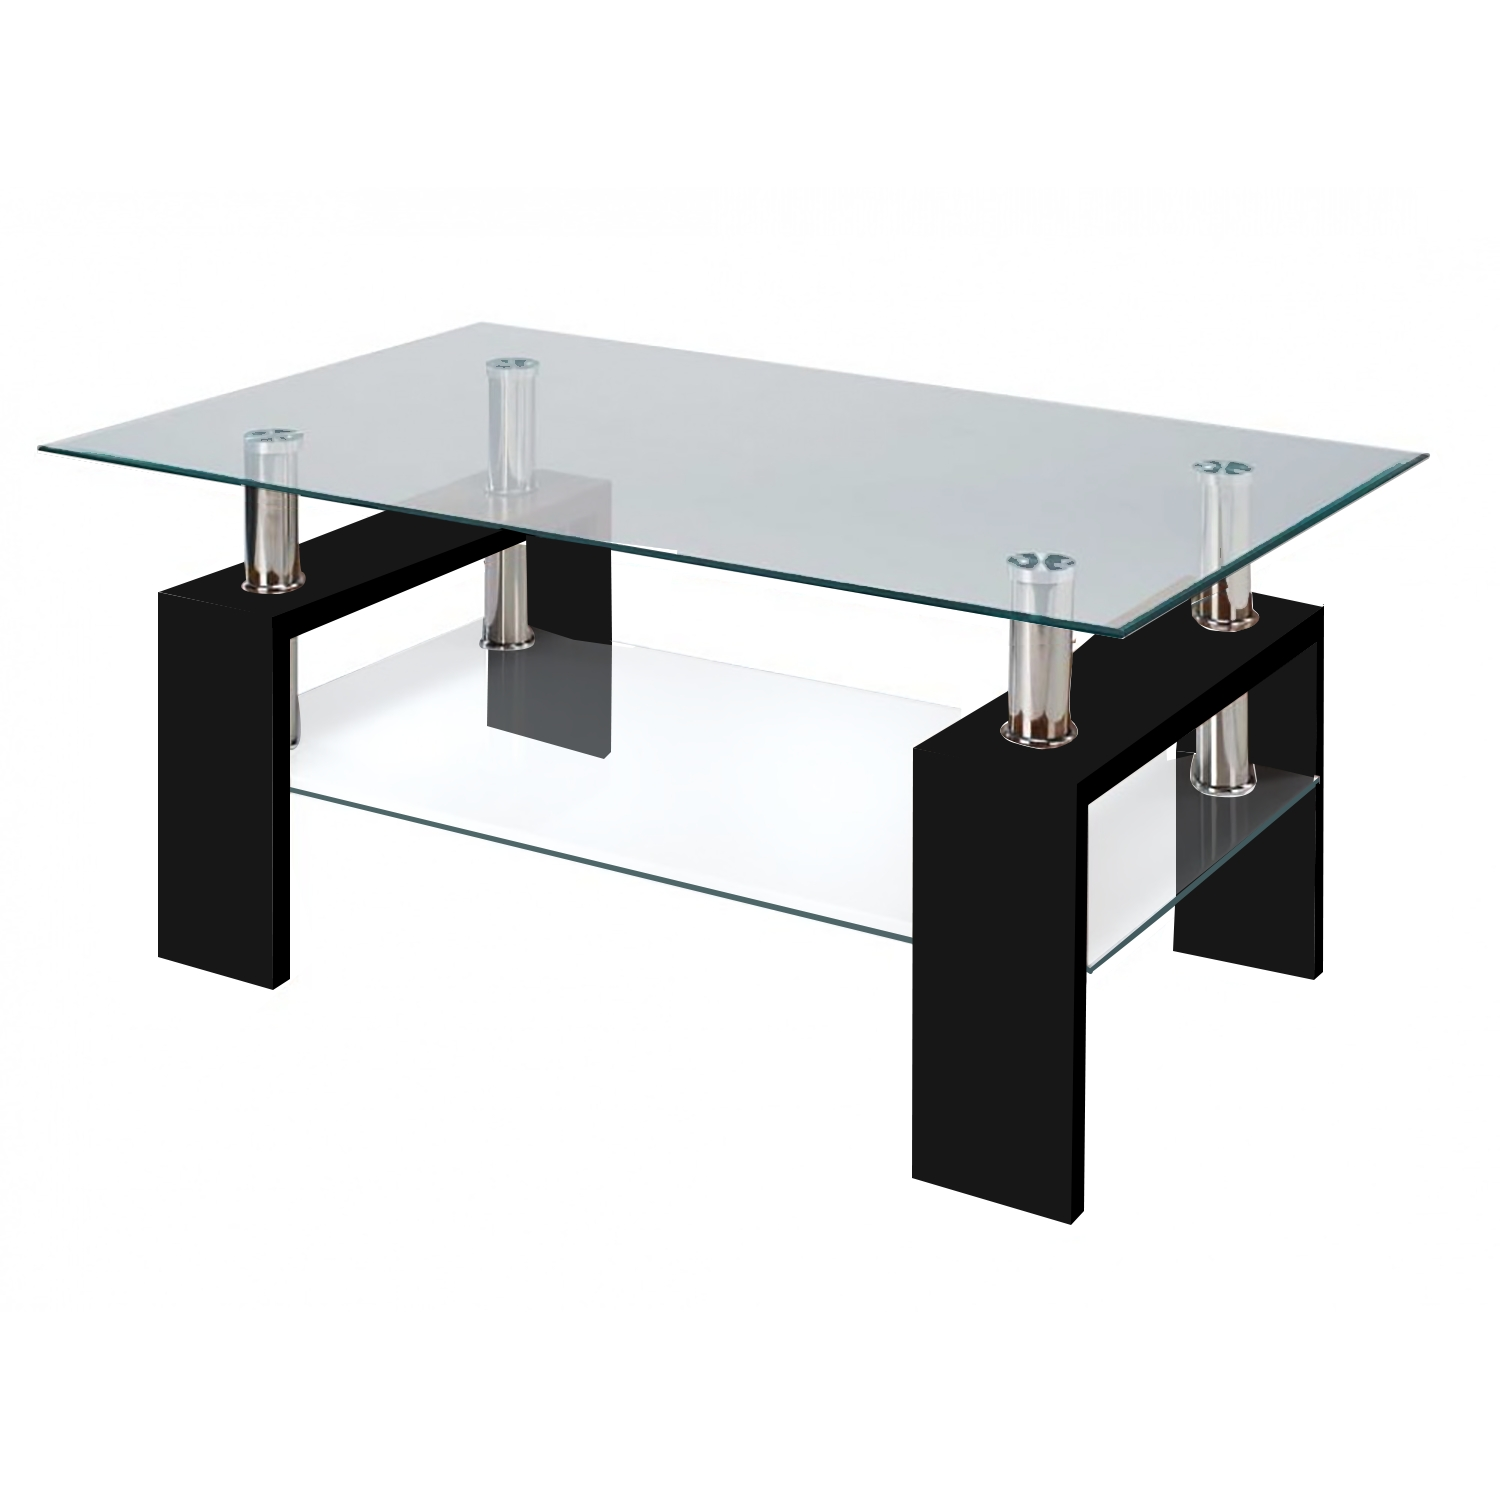 Modern Glass Black Coffee Table With Shelf Contemporary within Glass and Black Coffee Tables (Image 28 of 30)